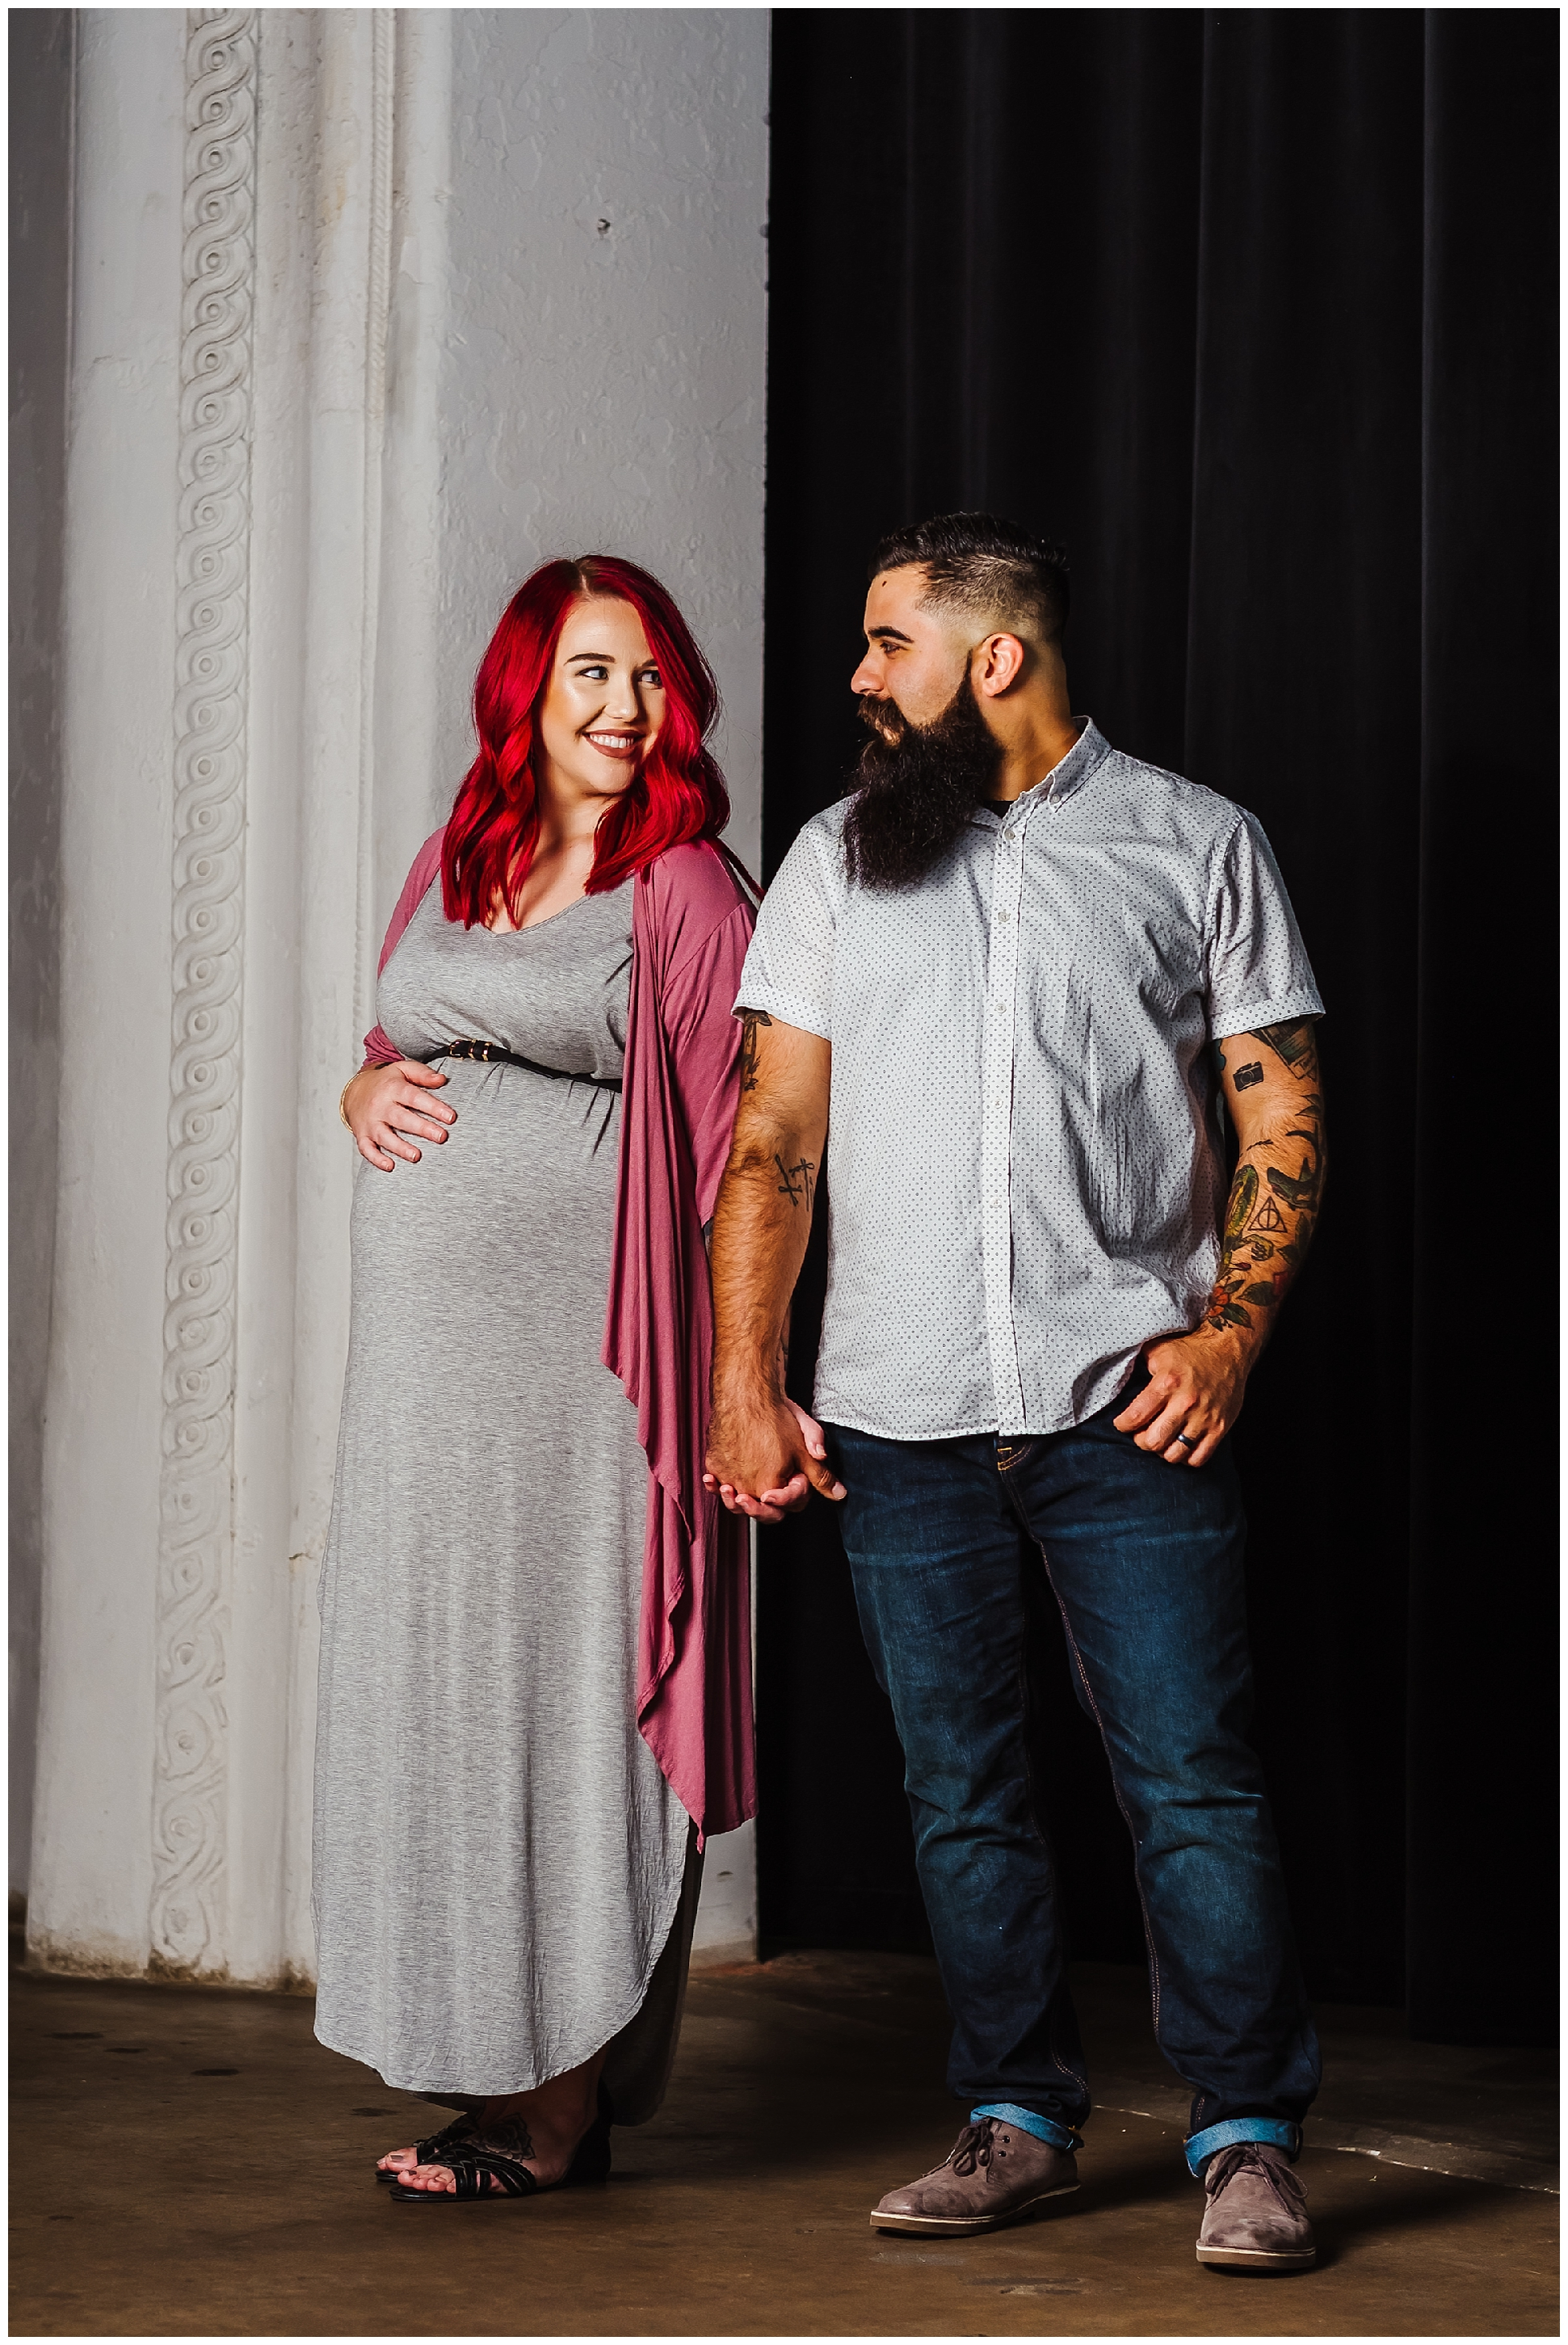 tampa-rad red-maternity-floral dress-armature works-rialto theater_0005.jpg